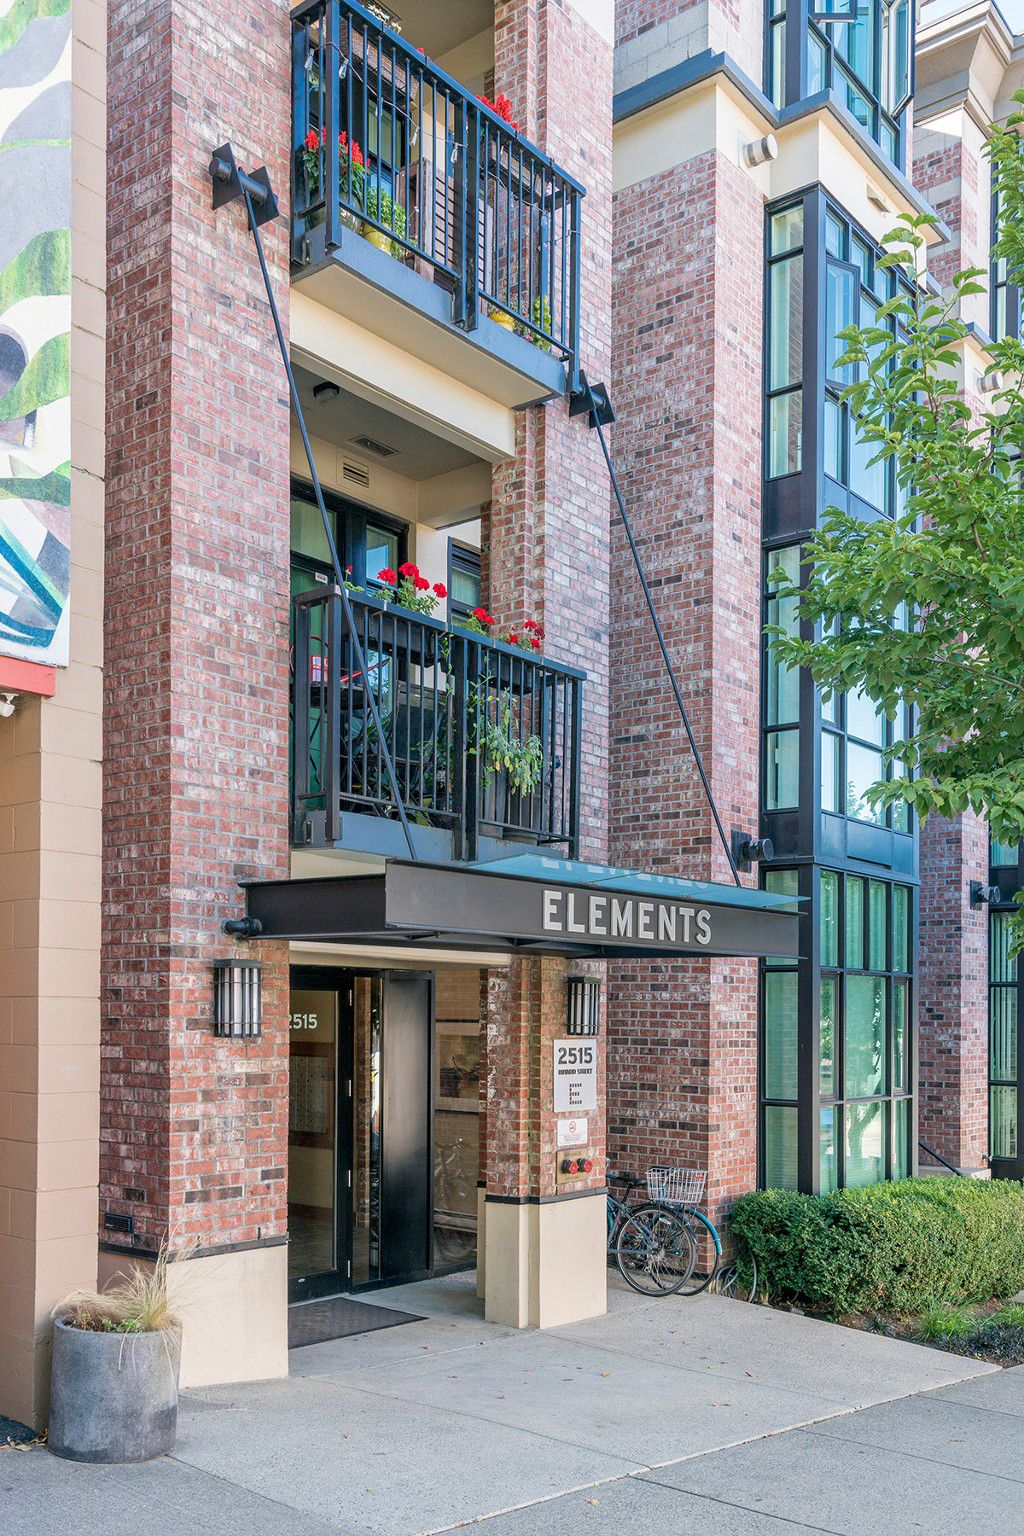 """Main Photo: 218 2515 ONTARIO Street in Vancouver: Mount Pleasant VW Condo for sale in """"ELEMENTS"""" (Vancouver West)  : MLS®# R2200404"""